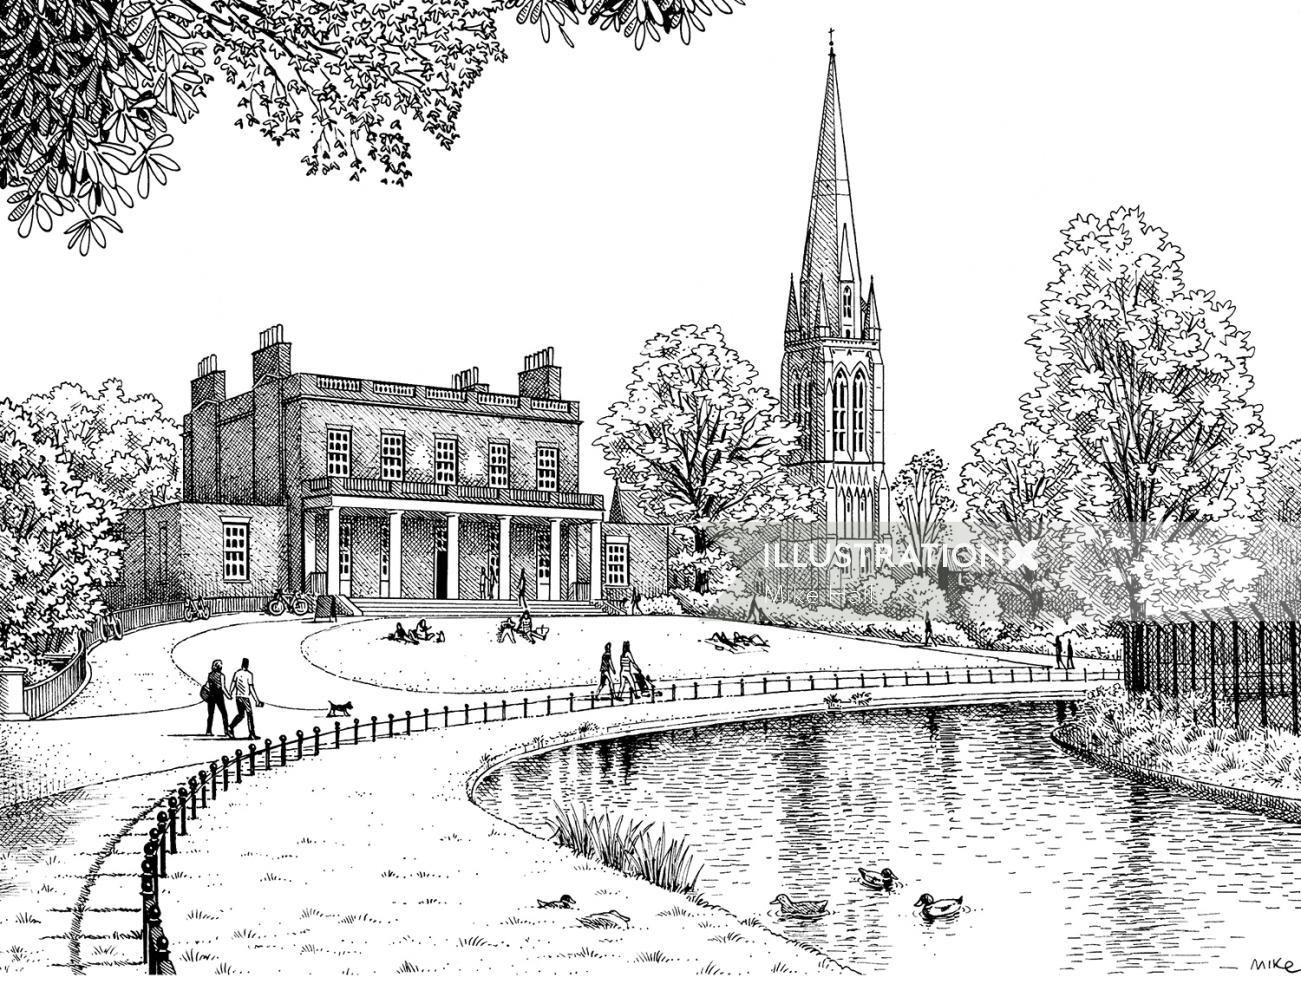 Clissold Park, London illustrated map